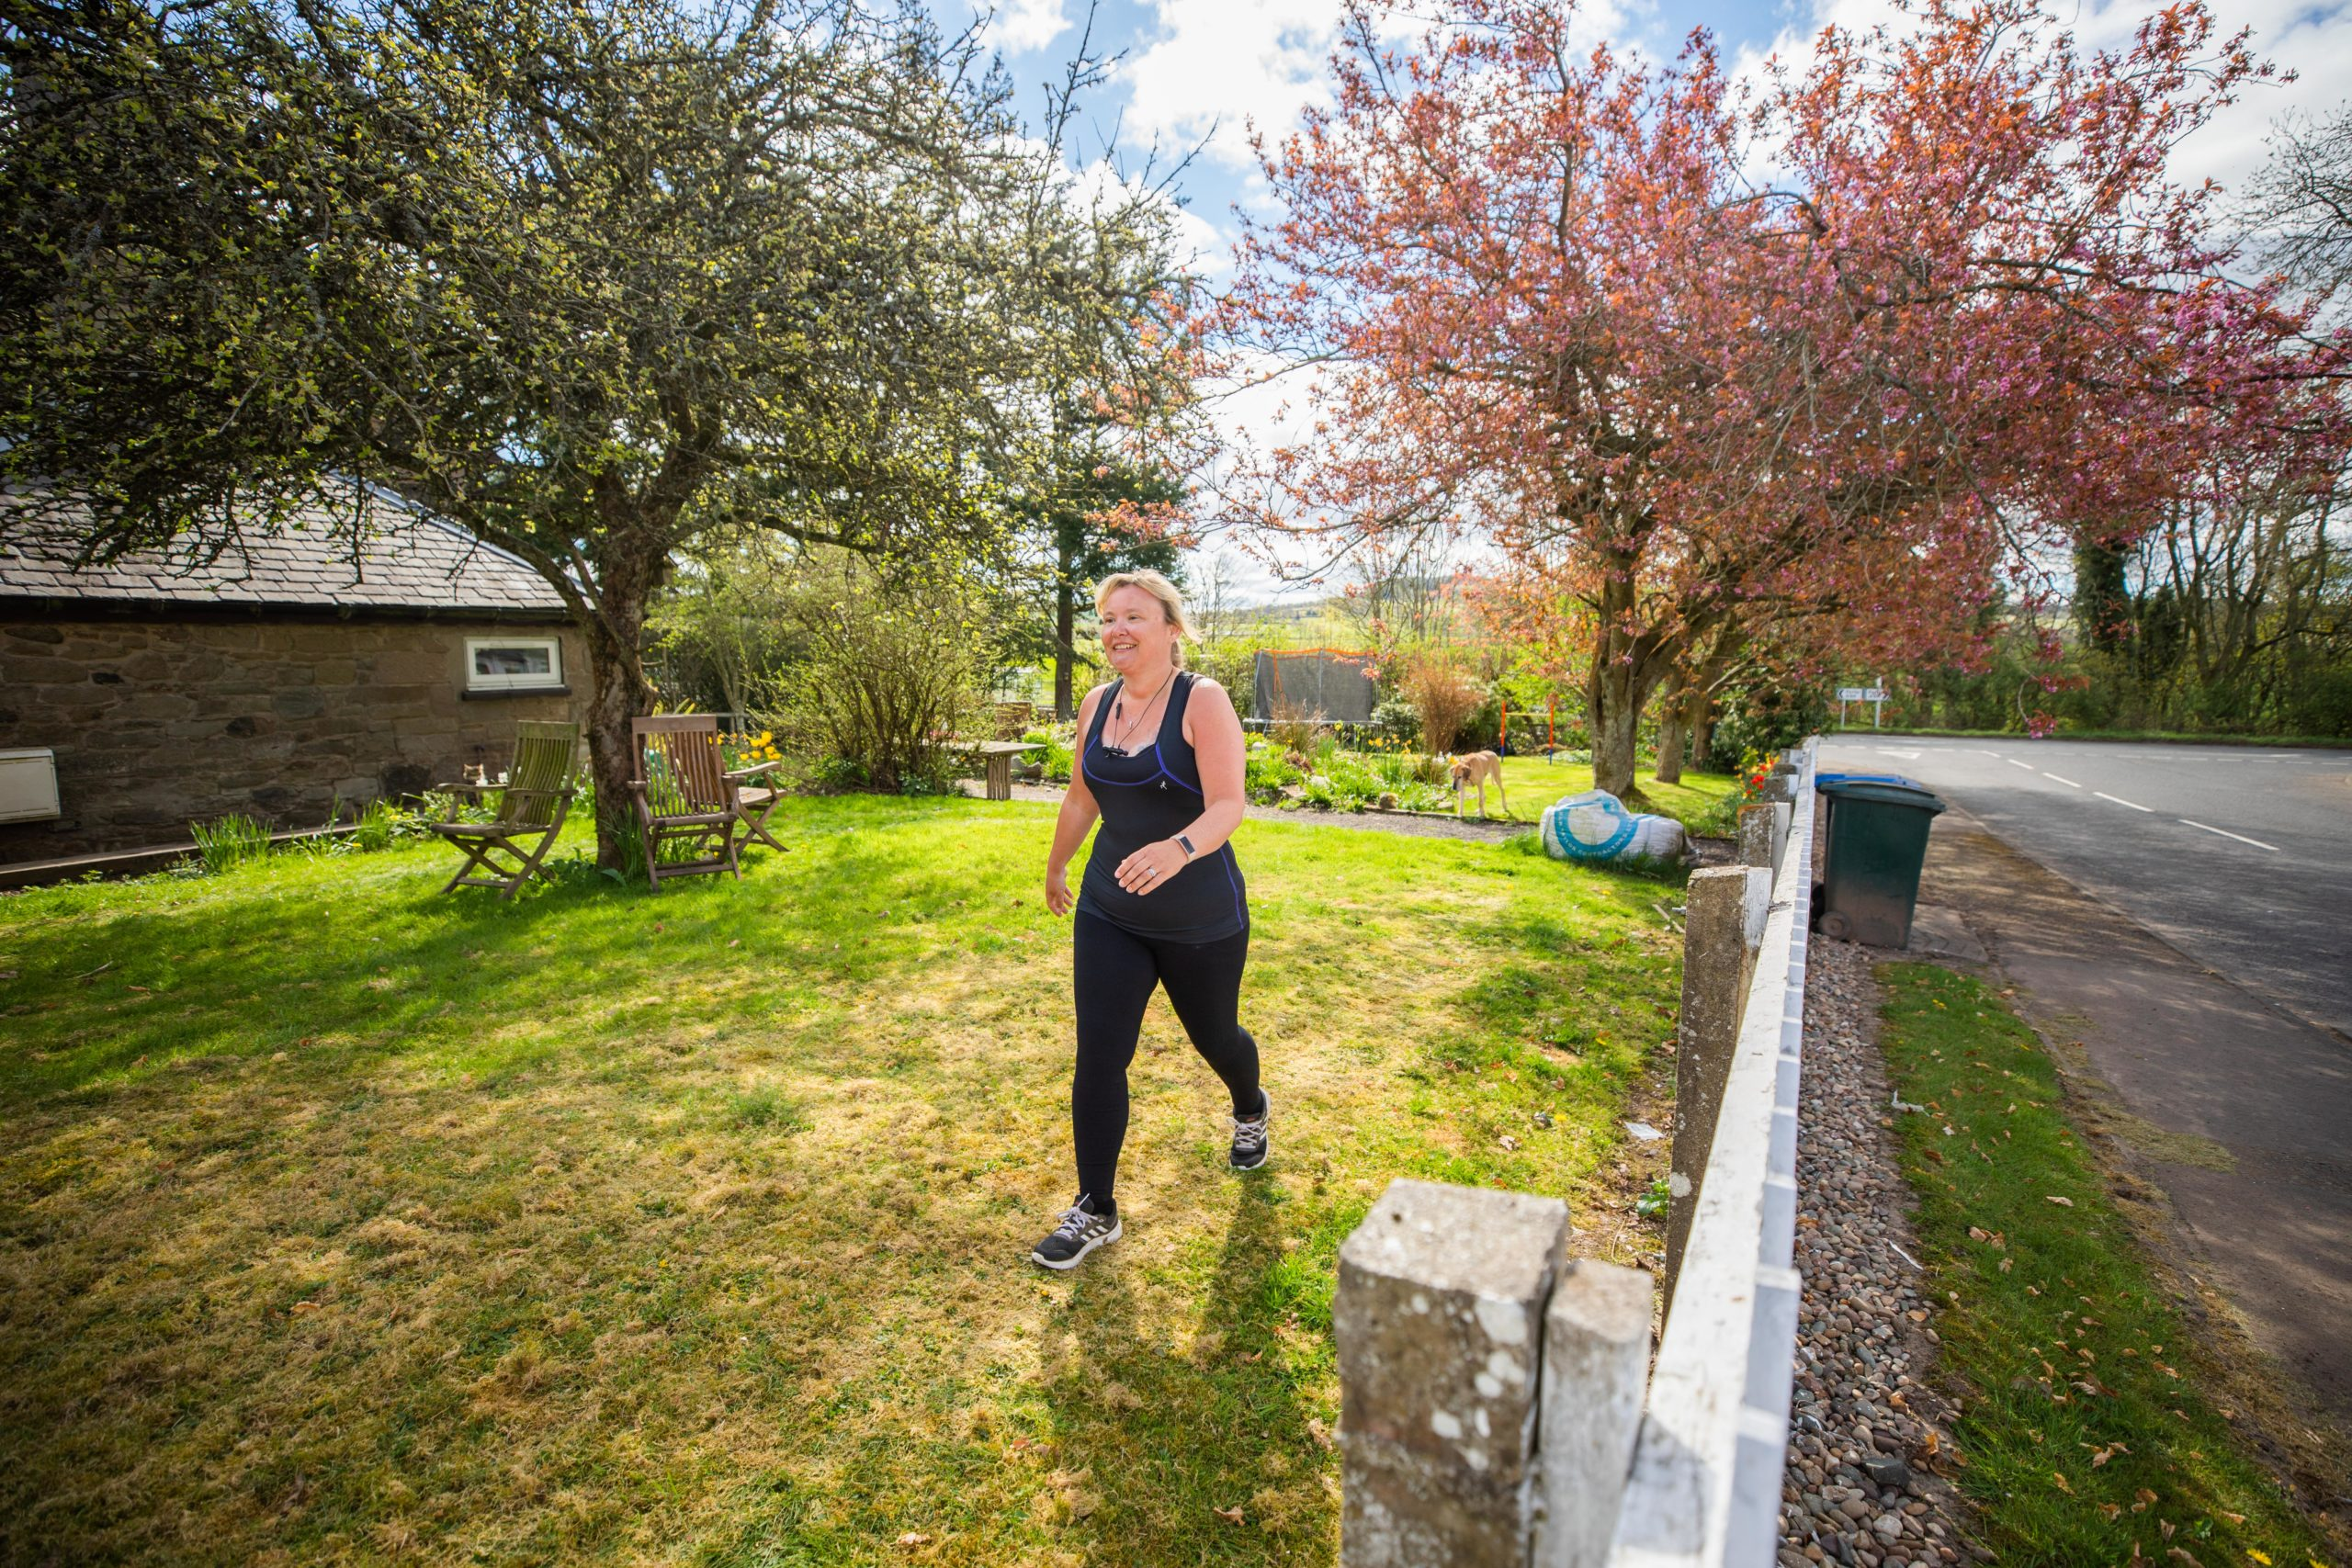 Val Gill virtually walking to John O'Groats to raise money for SCAA by walking on a treadmill, round her garden and near her house during the lockdown.